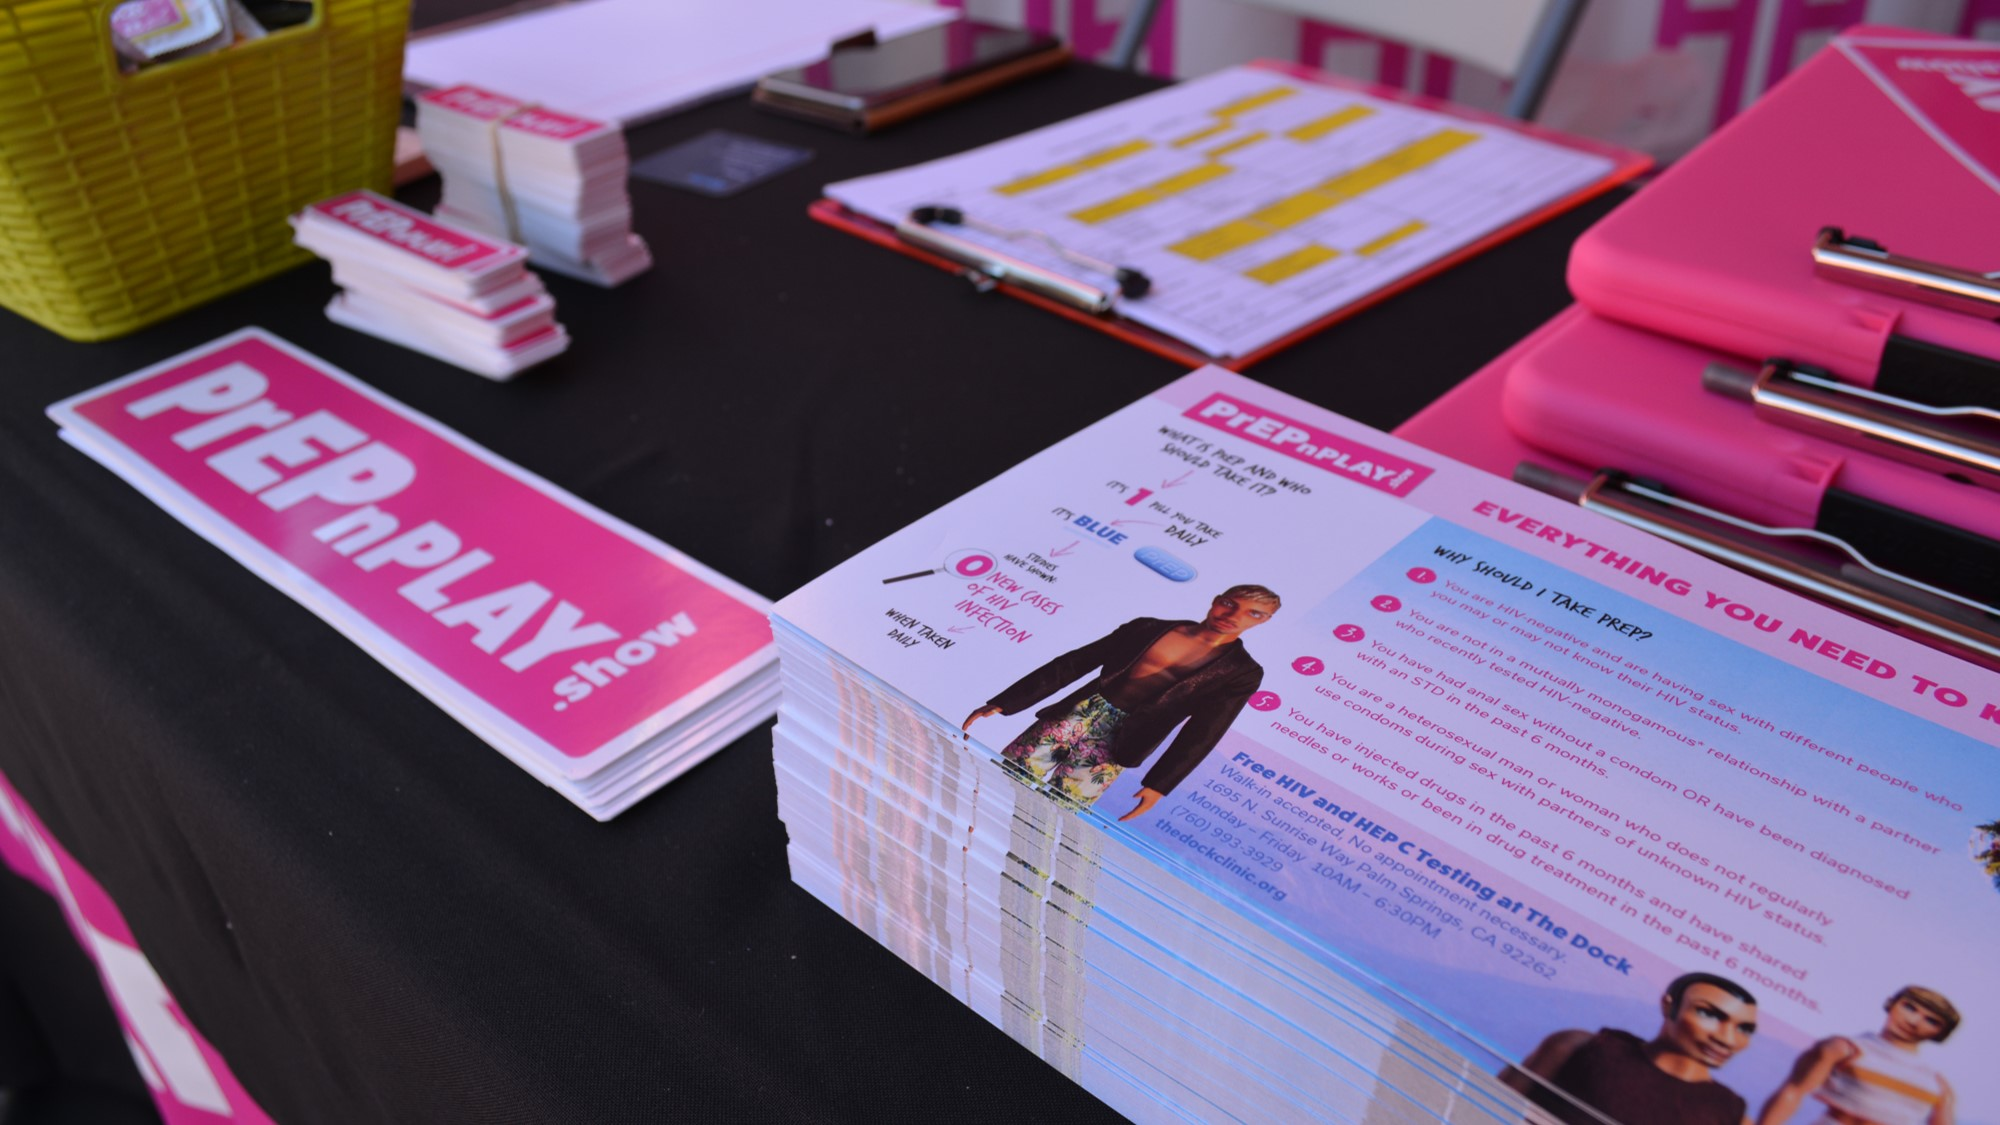 Our comprehensive and purposefully unintimidating print materials.